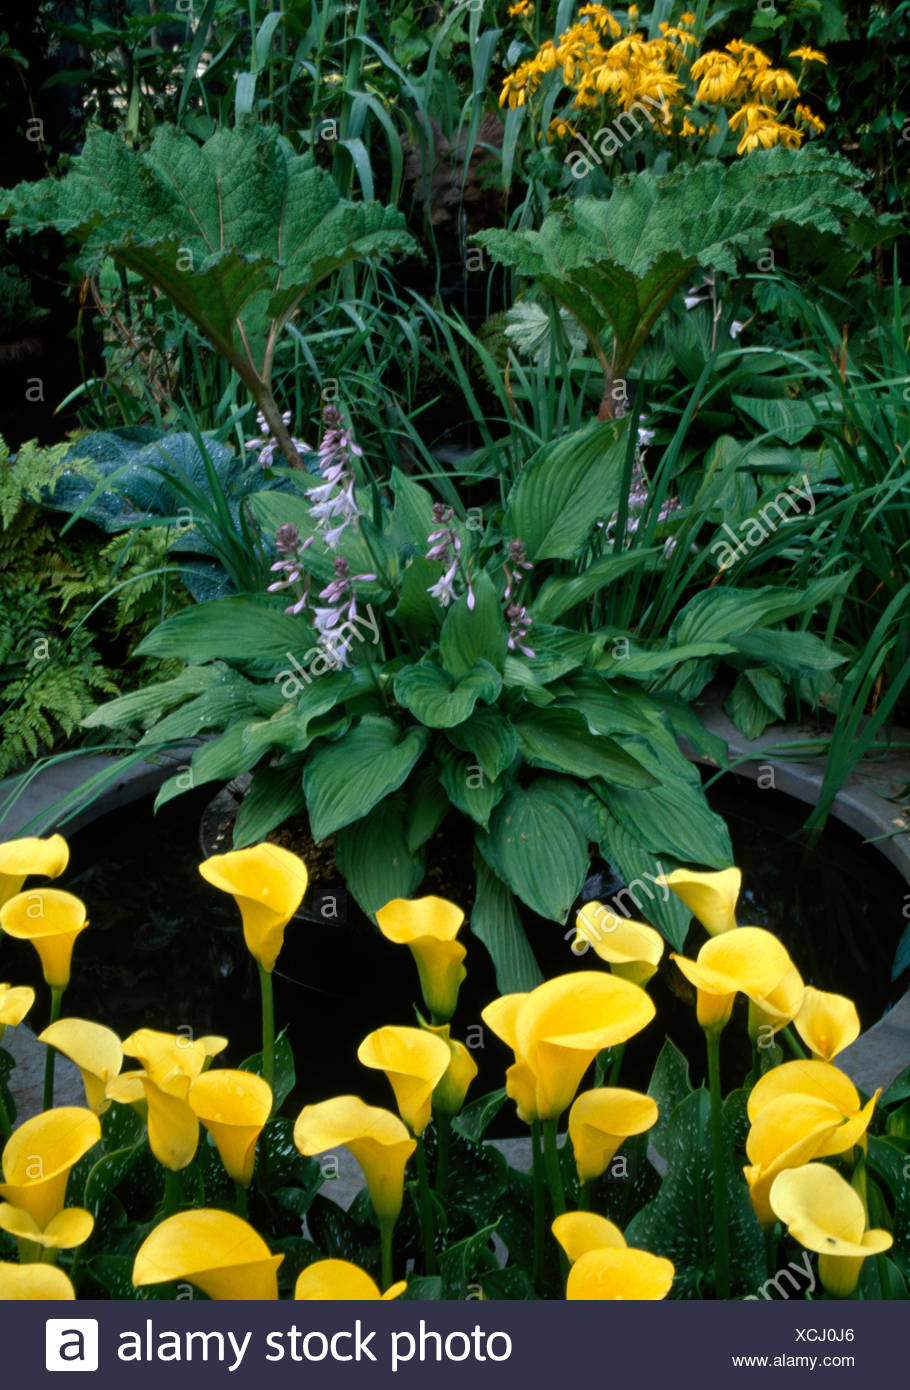 Close Up Of Yellow Calla Lilies And A Flowering Hosta Beside Small